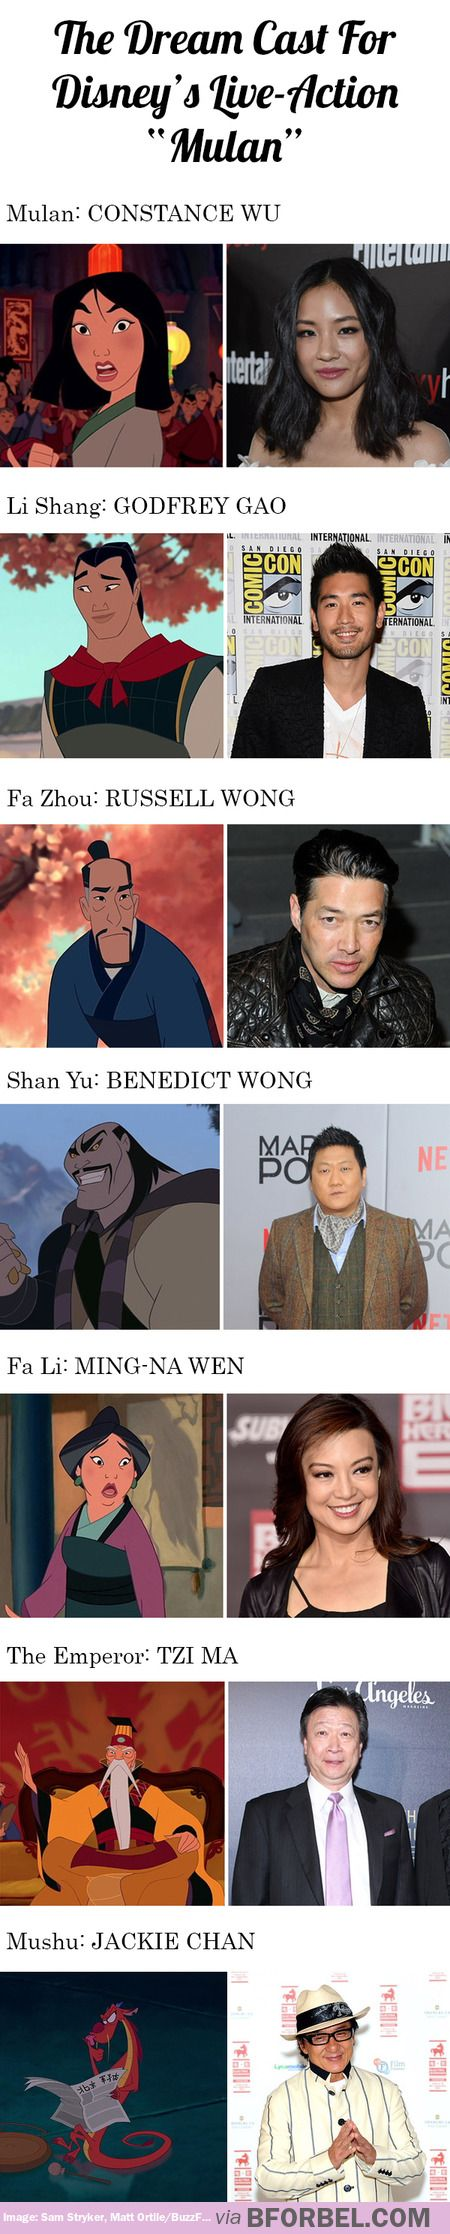 """Our dream cast for Disney's live-action """"Mulan."""" MING NA WEN BETTER BE IN IT"""